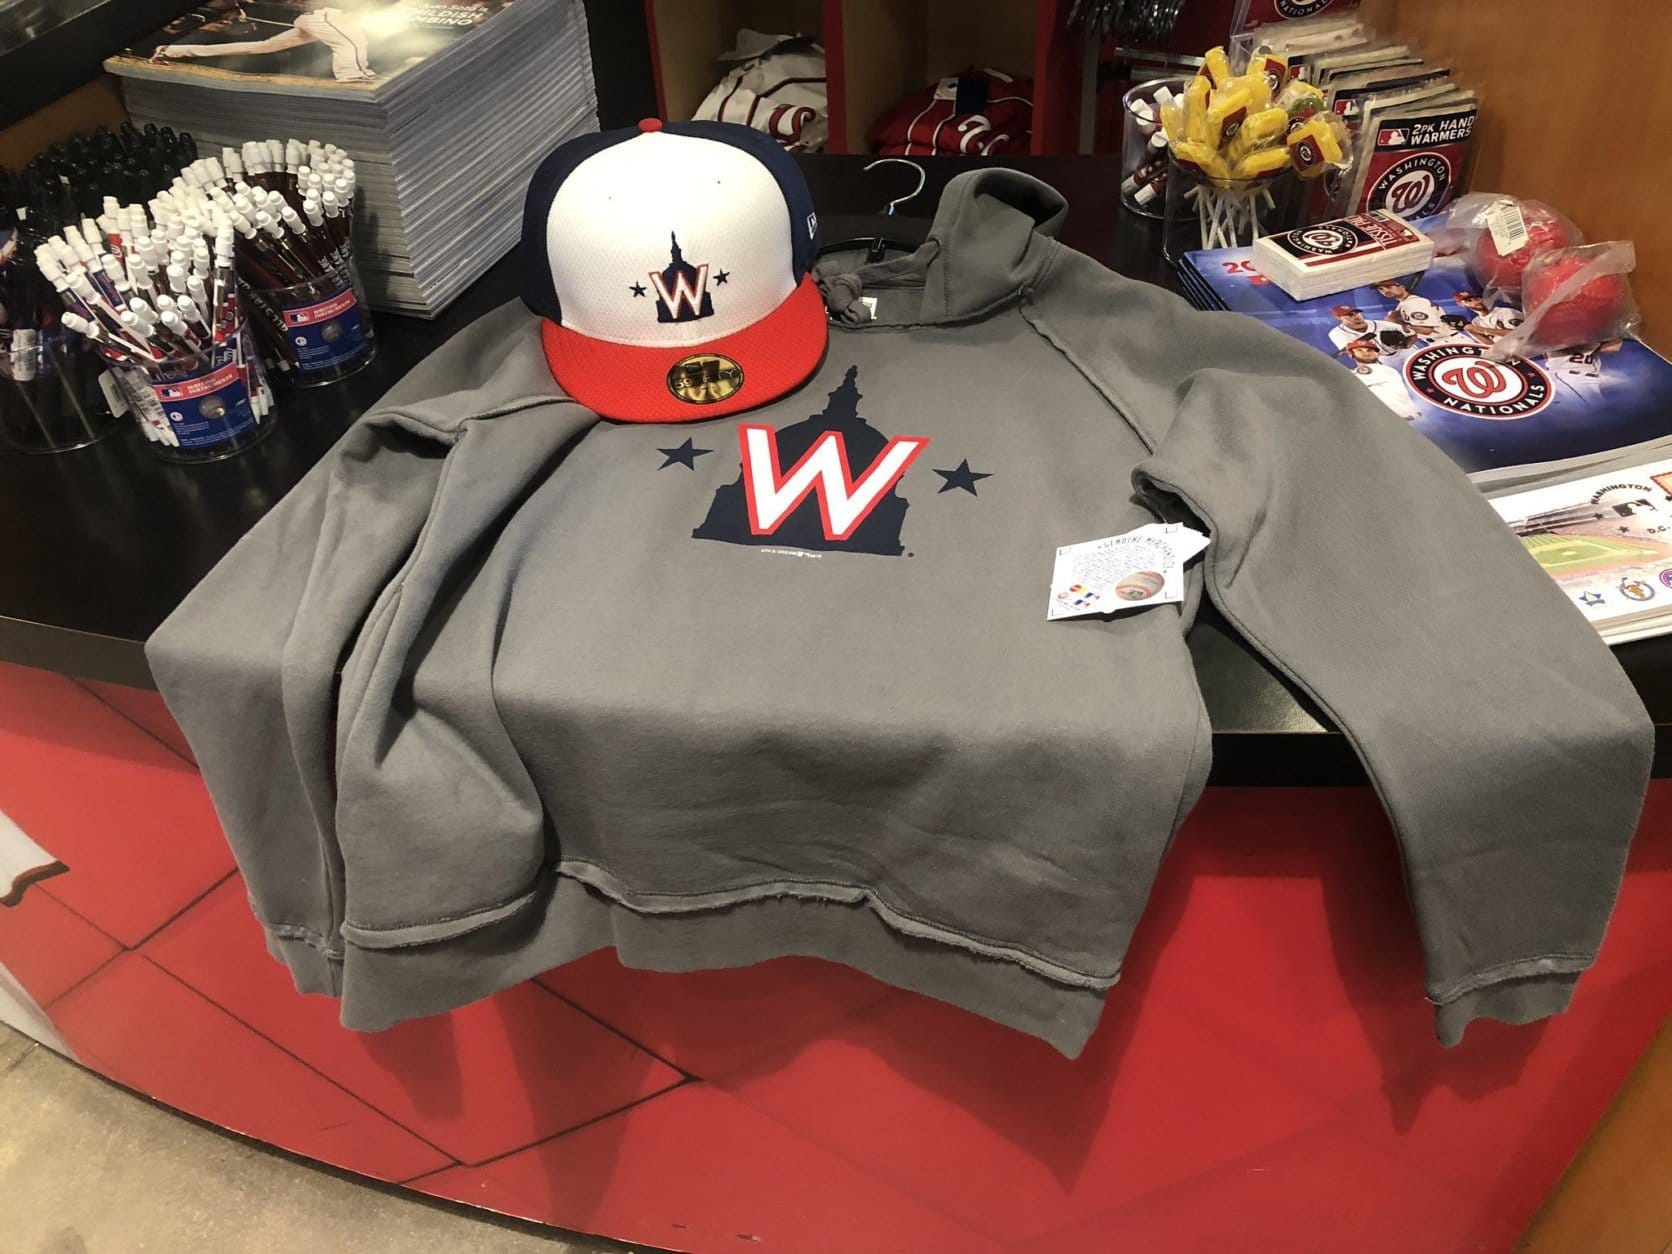 Nationals gear with the 2019 logo will also be available for the first time at Winterfest. (WTOP/Mike Murillo)